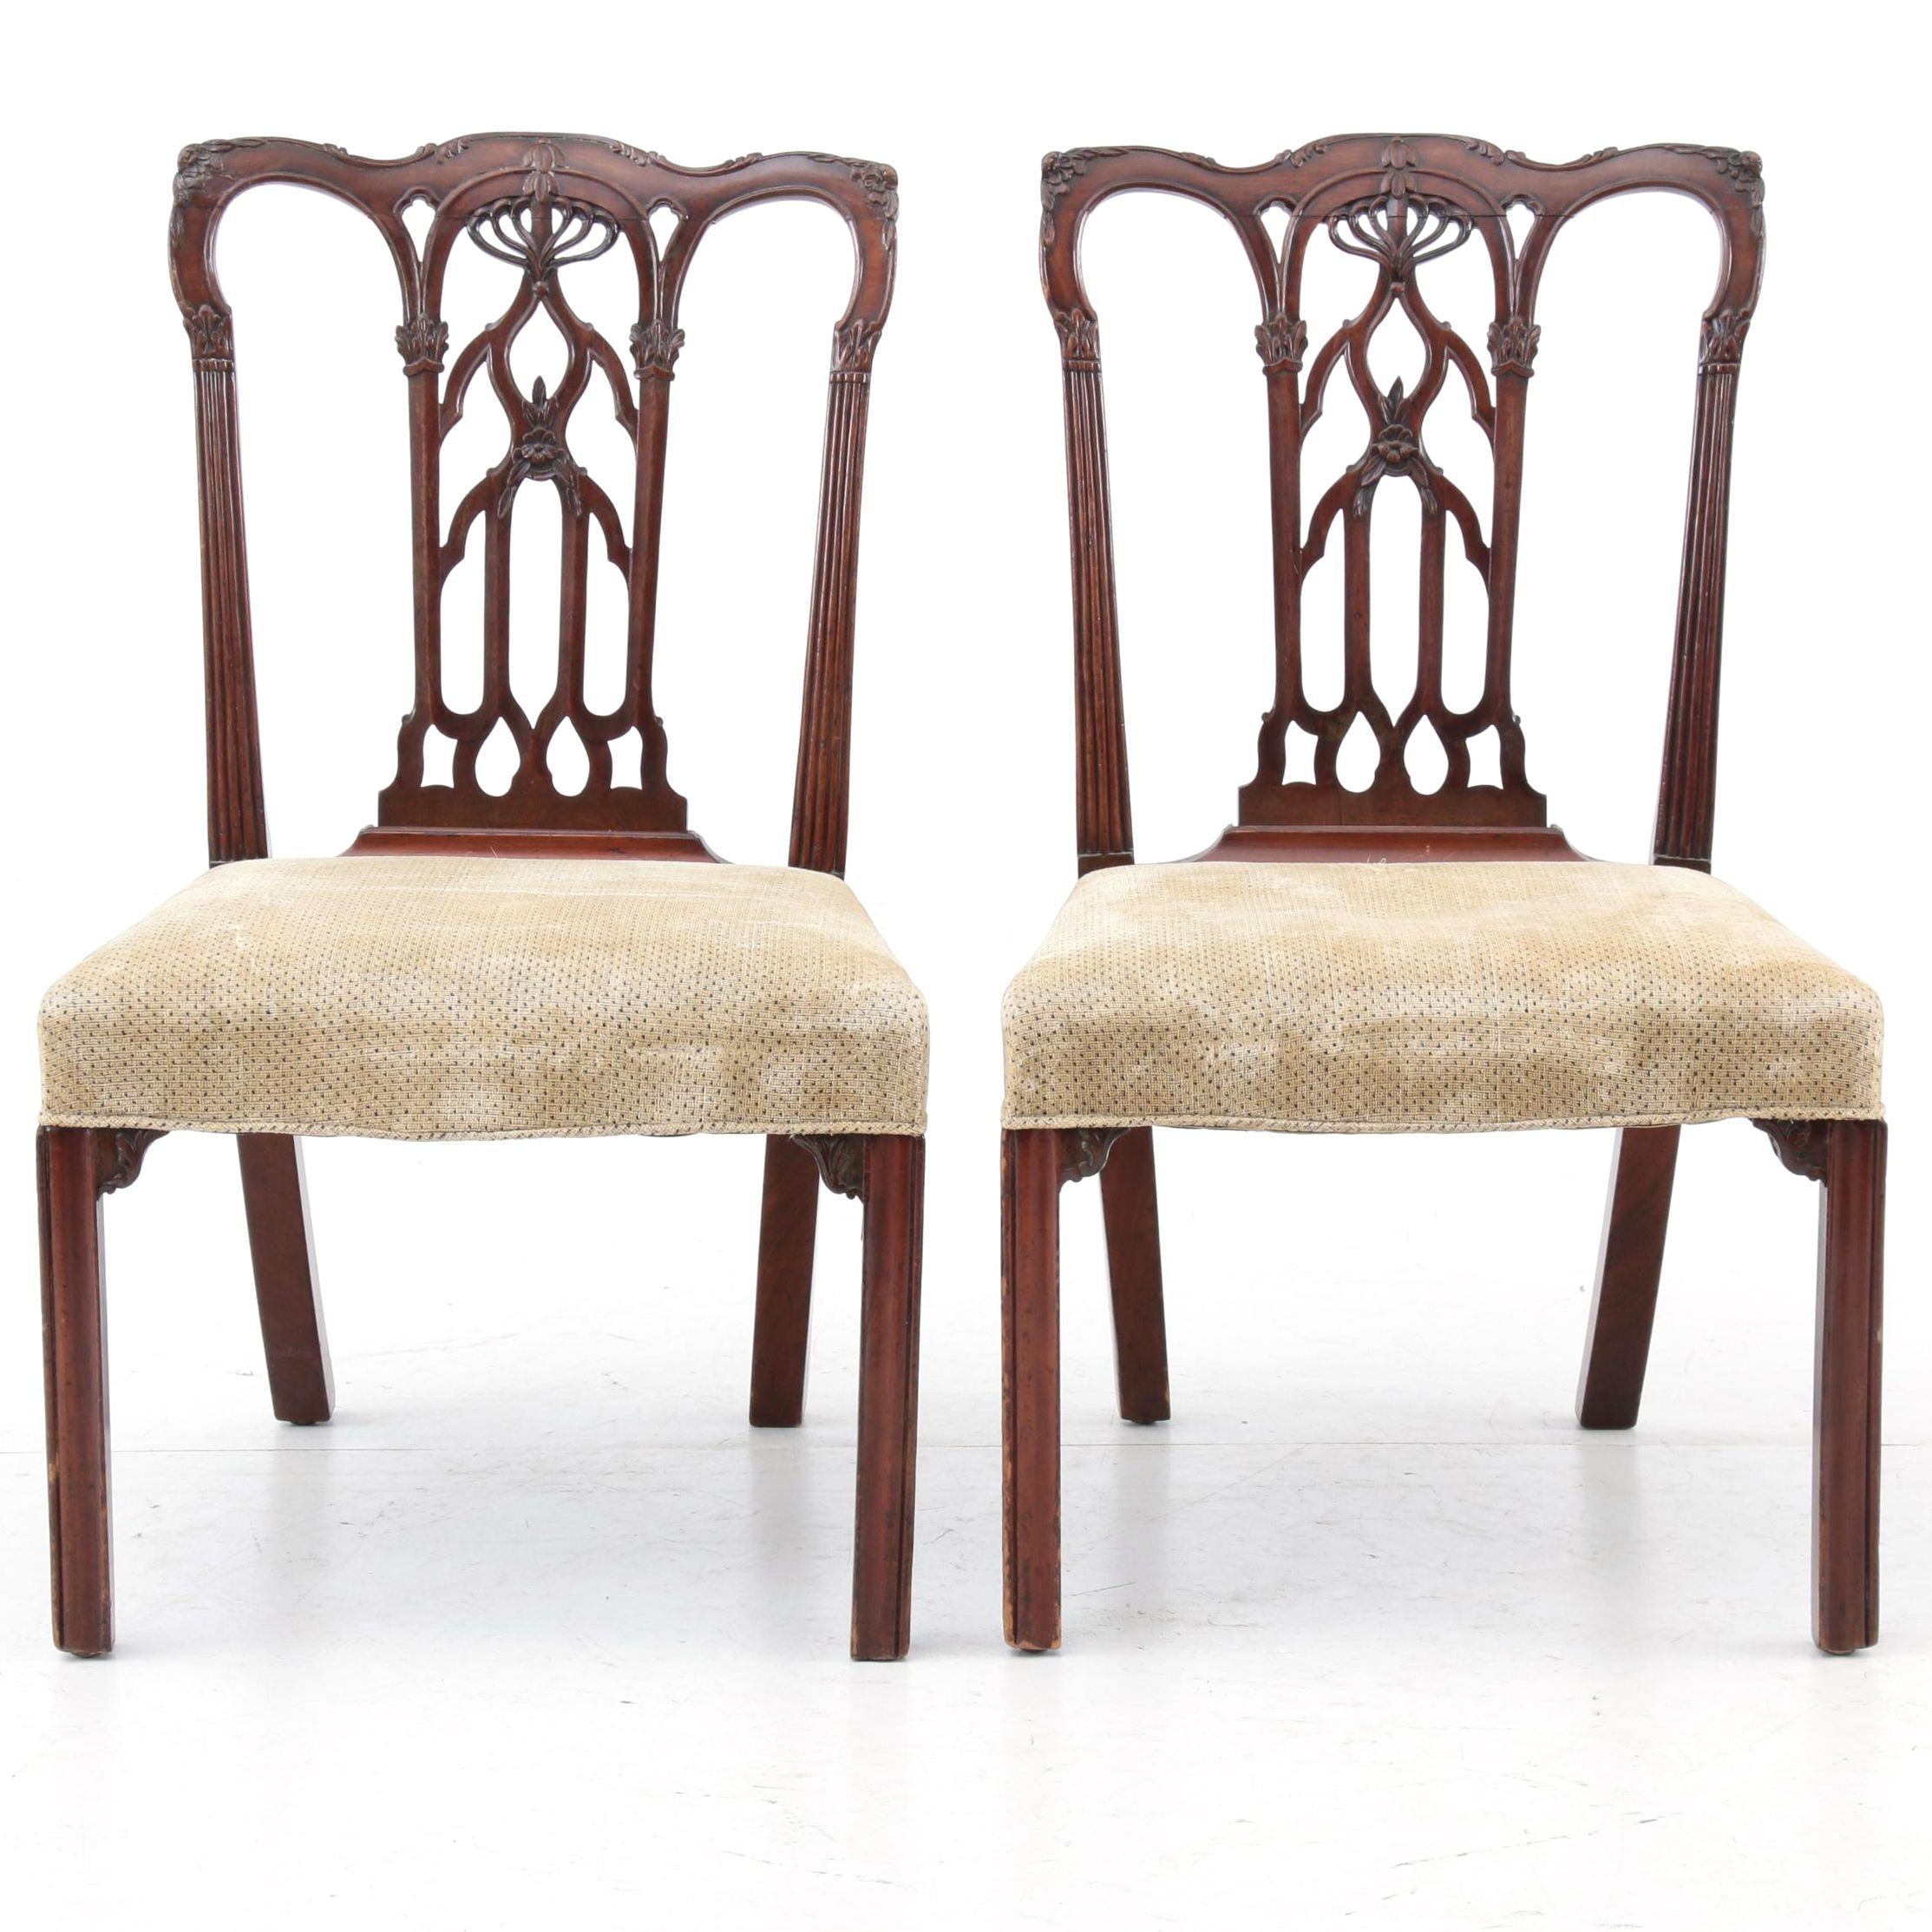 Pair of Chippendale Mahogany Side Chairs, Late 18th Century